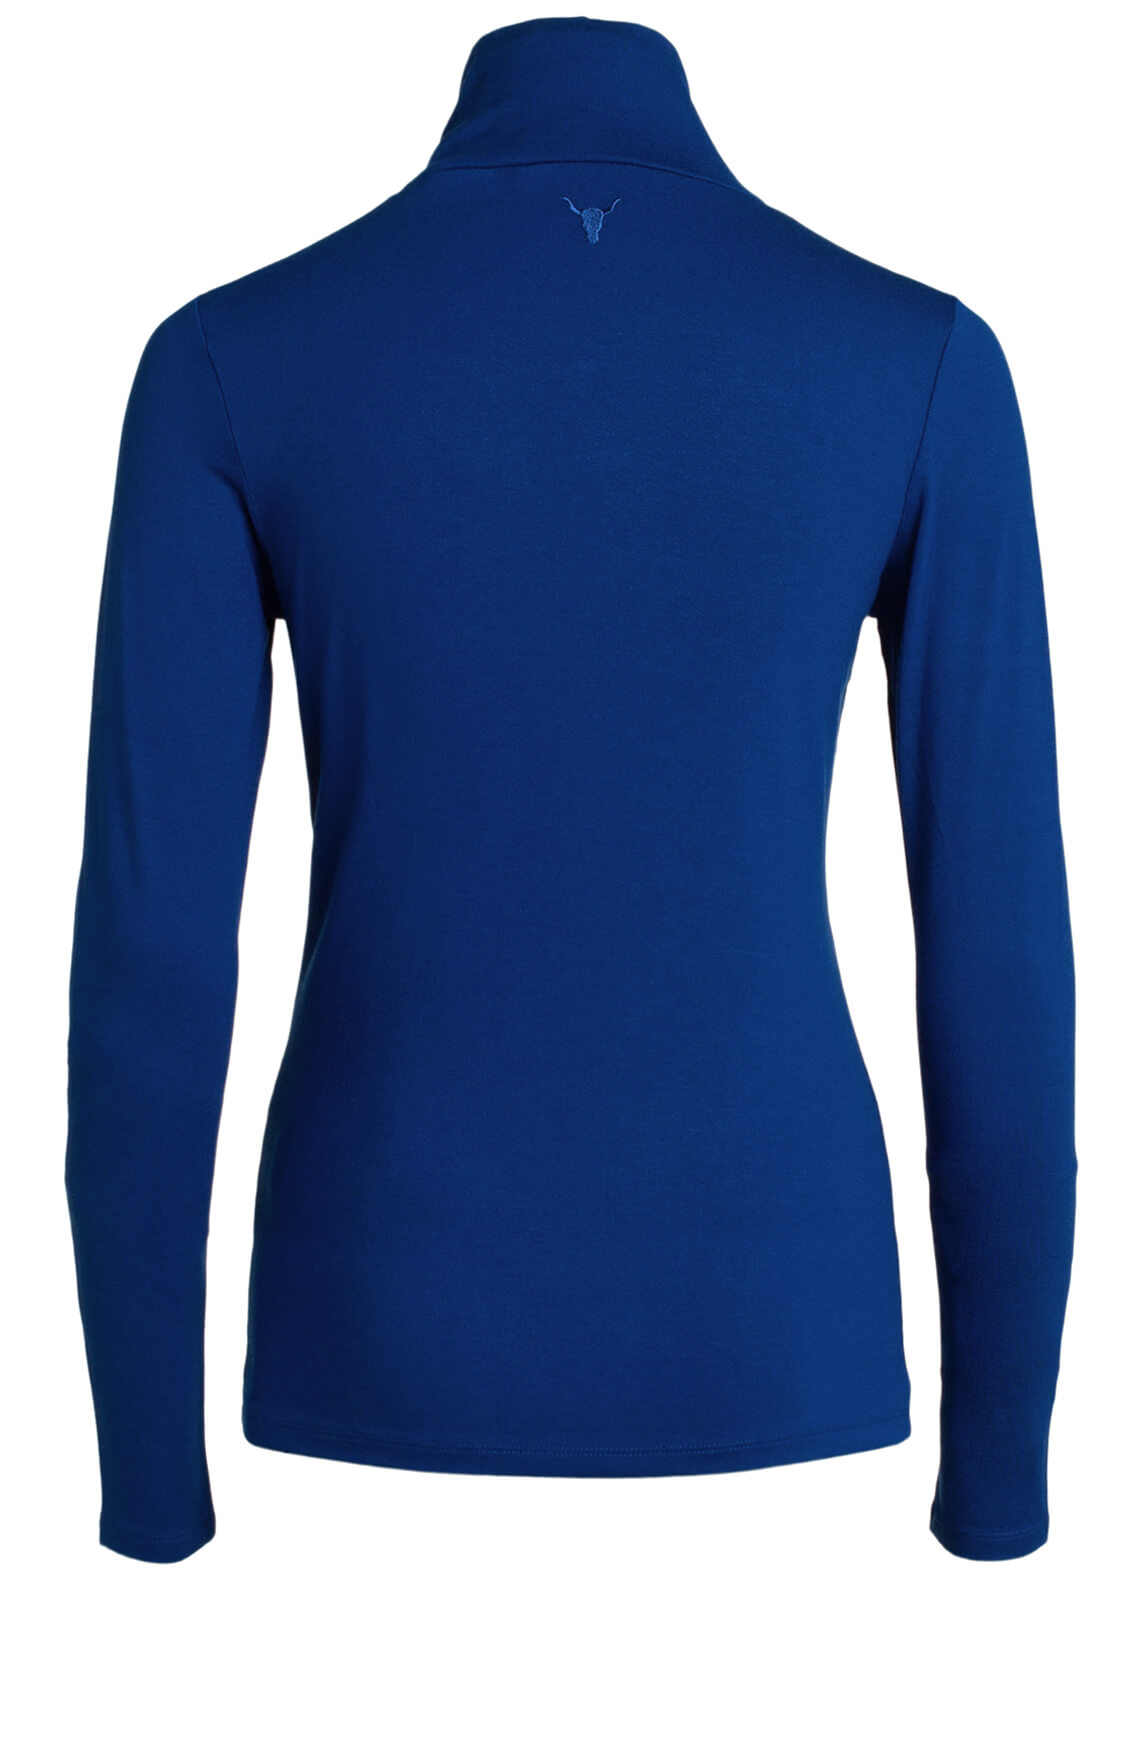 Alix The Label Dames Stretch pullover Blauw